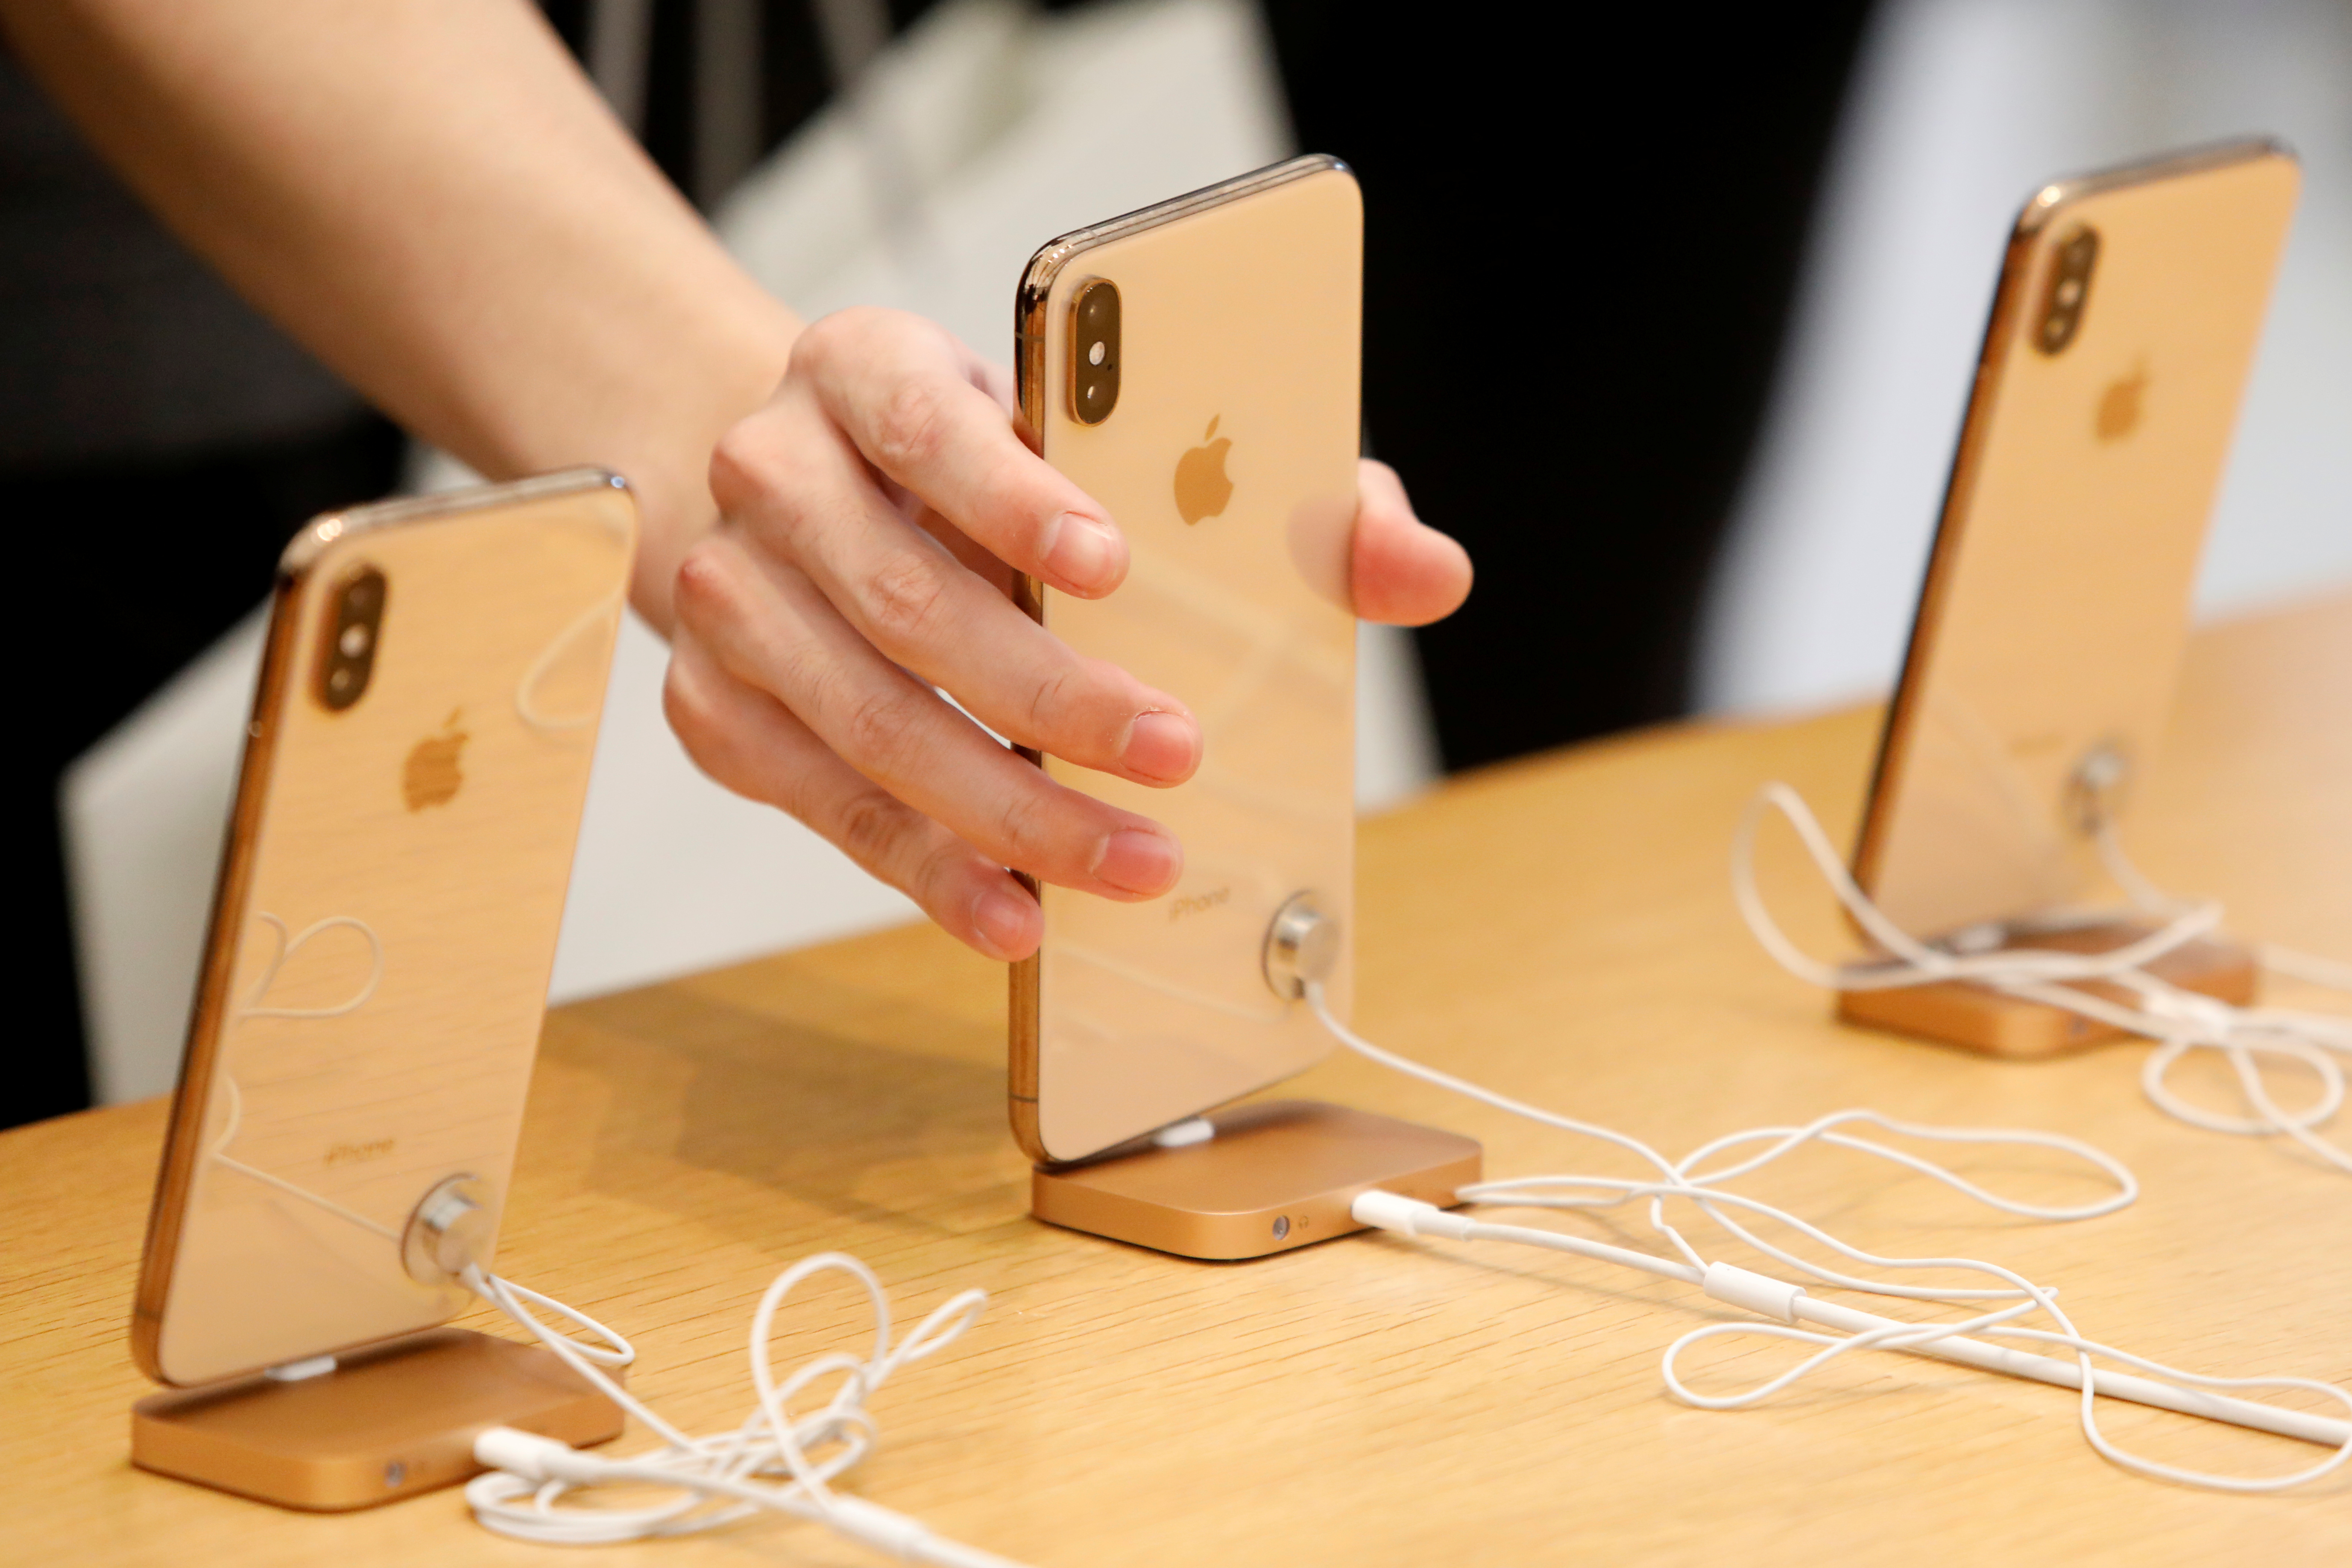 2cafa280a1c652 Two college kids allegedly used counterfeit iPhones to scam Apple out of  nearly $900,000